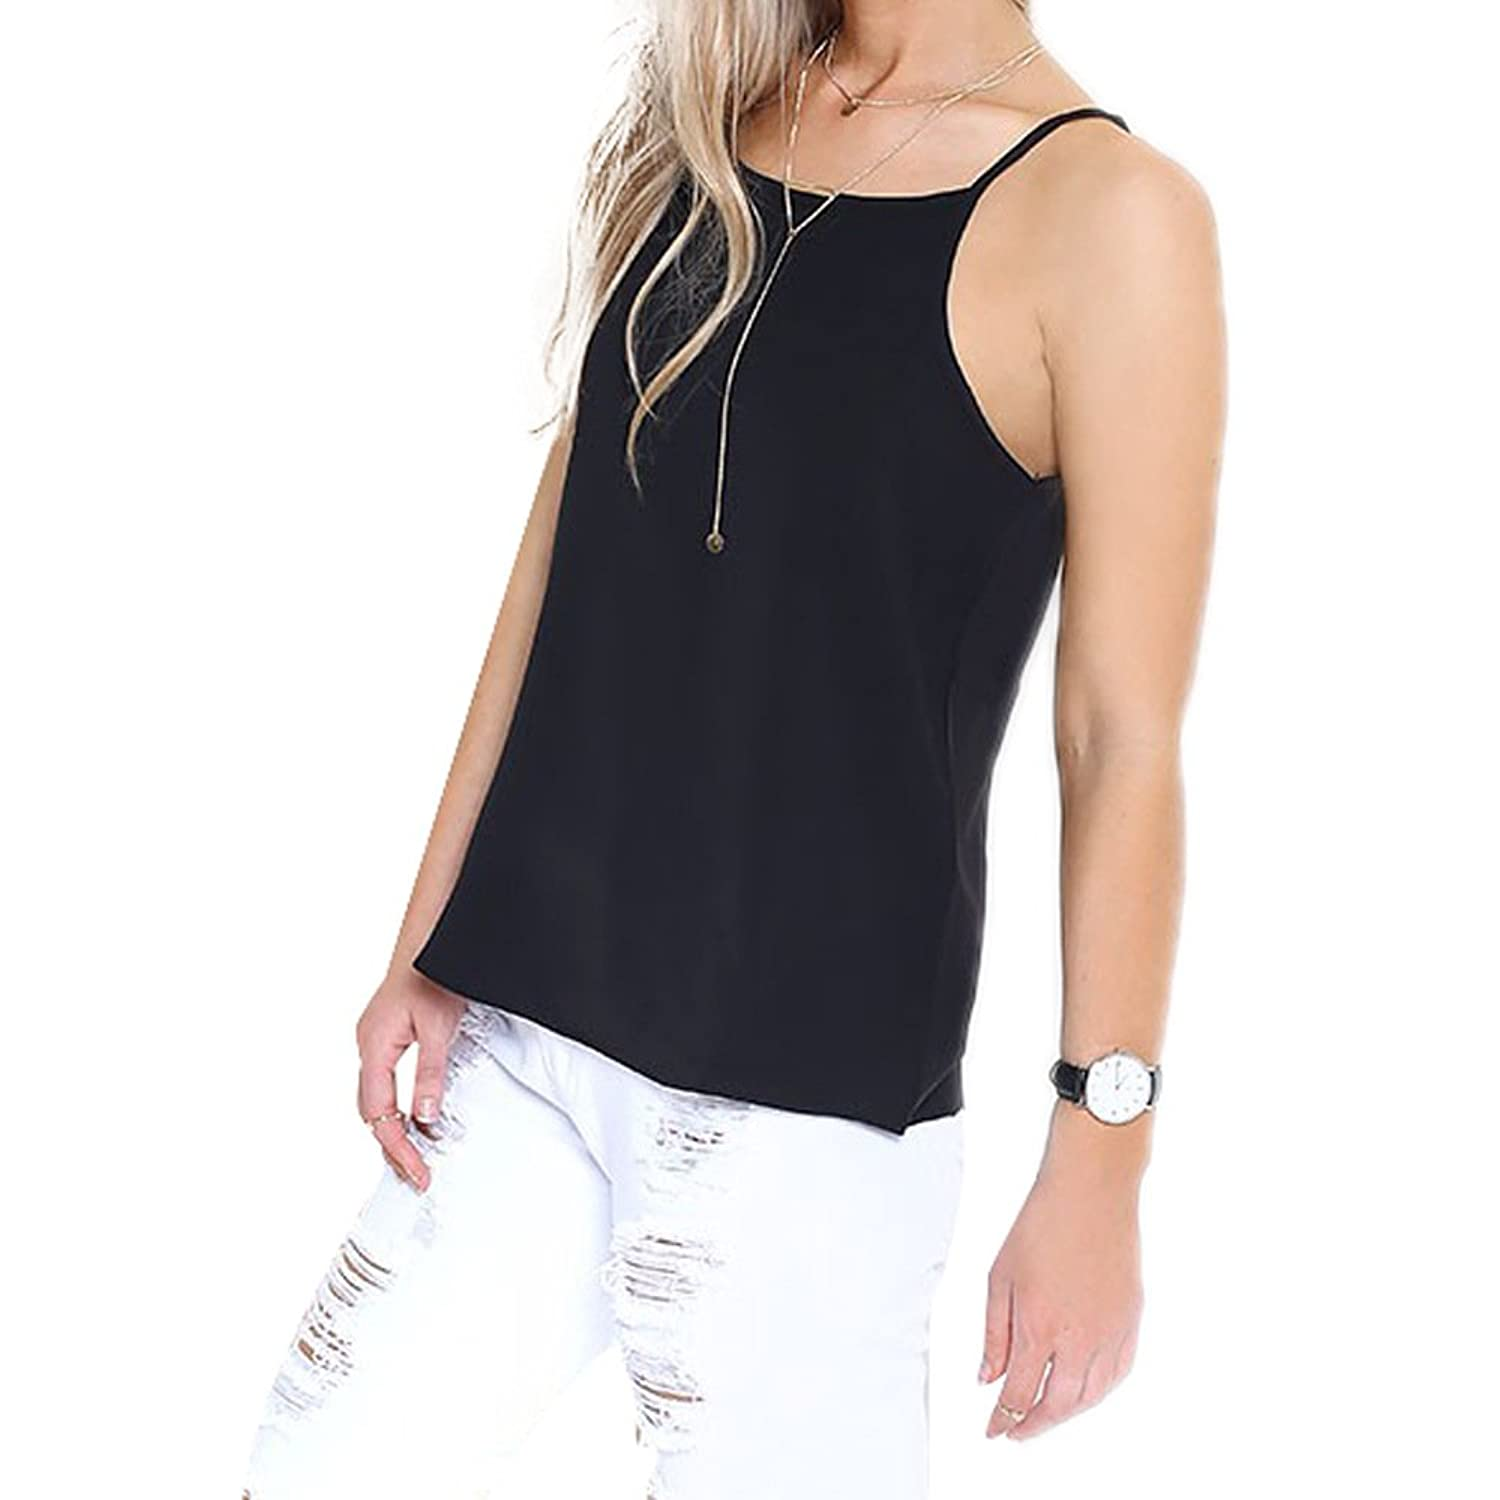 Eliacher Women's Casual Sleeveless Camis Summer Tops